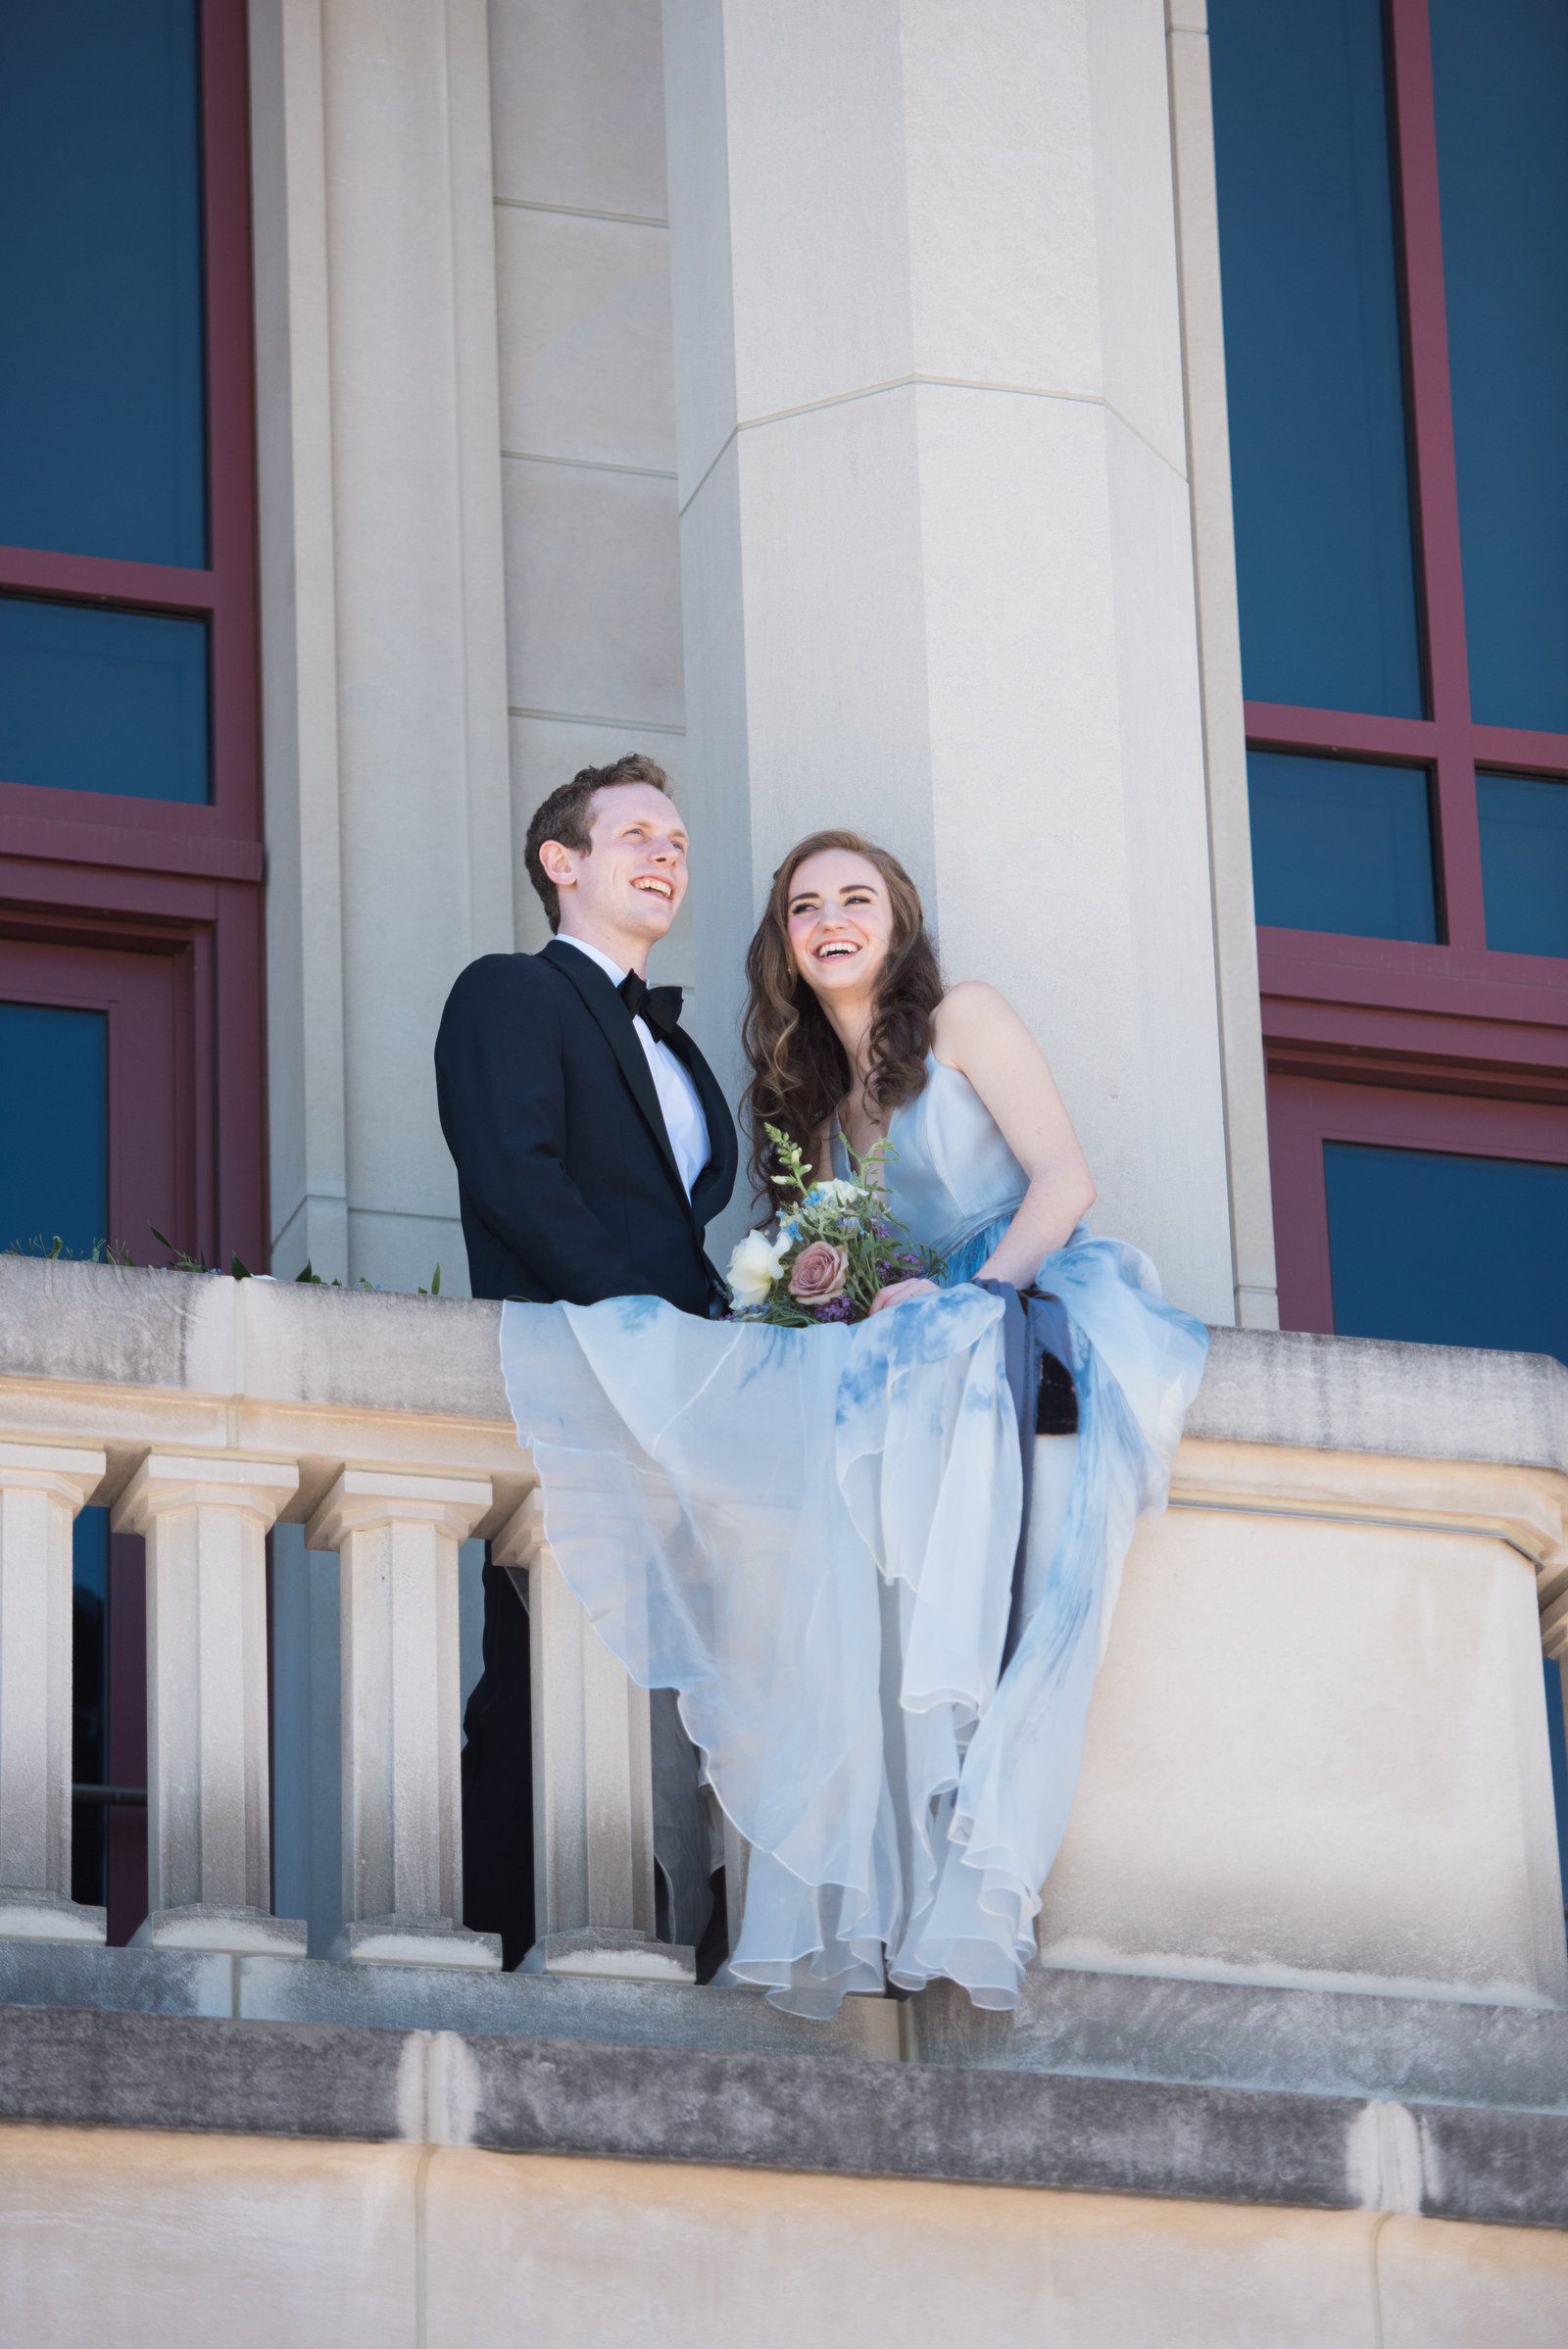 Ballet Inspired Engagement Session at the Palladium in Carmel Indiana (44 of 129)